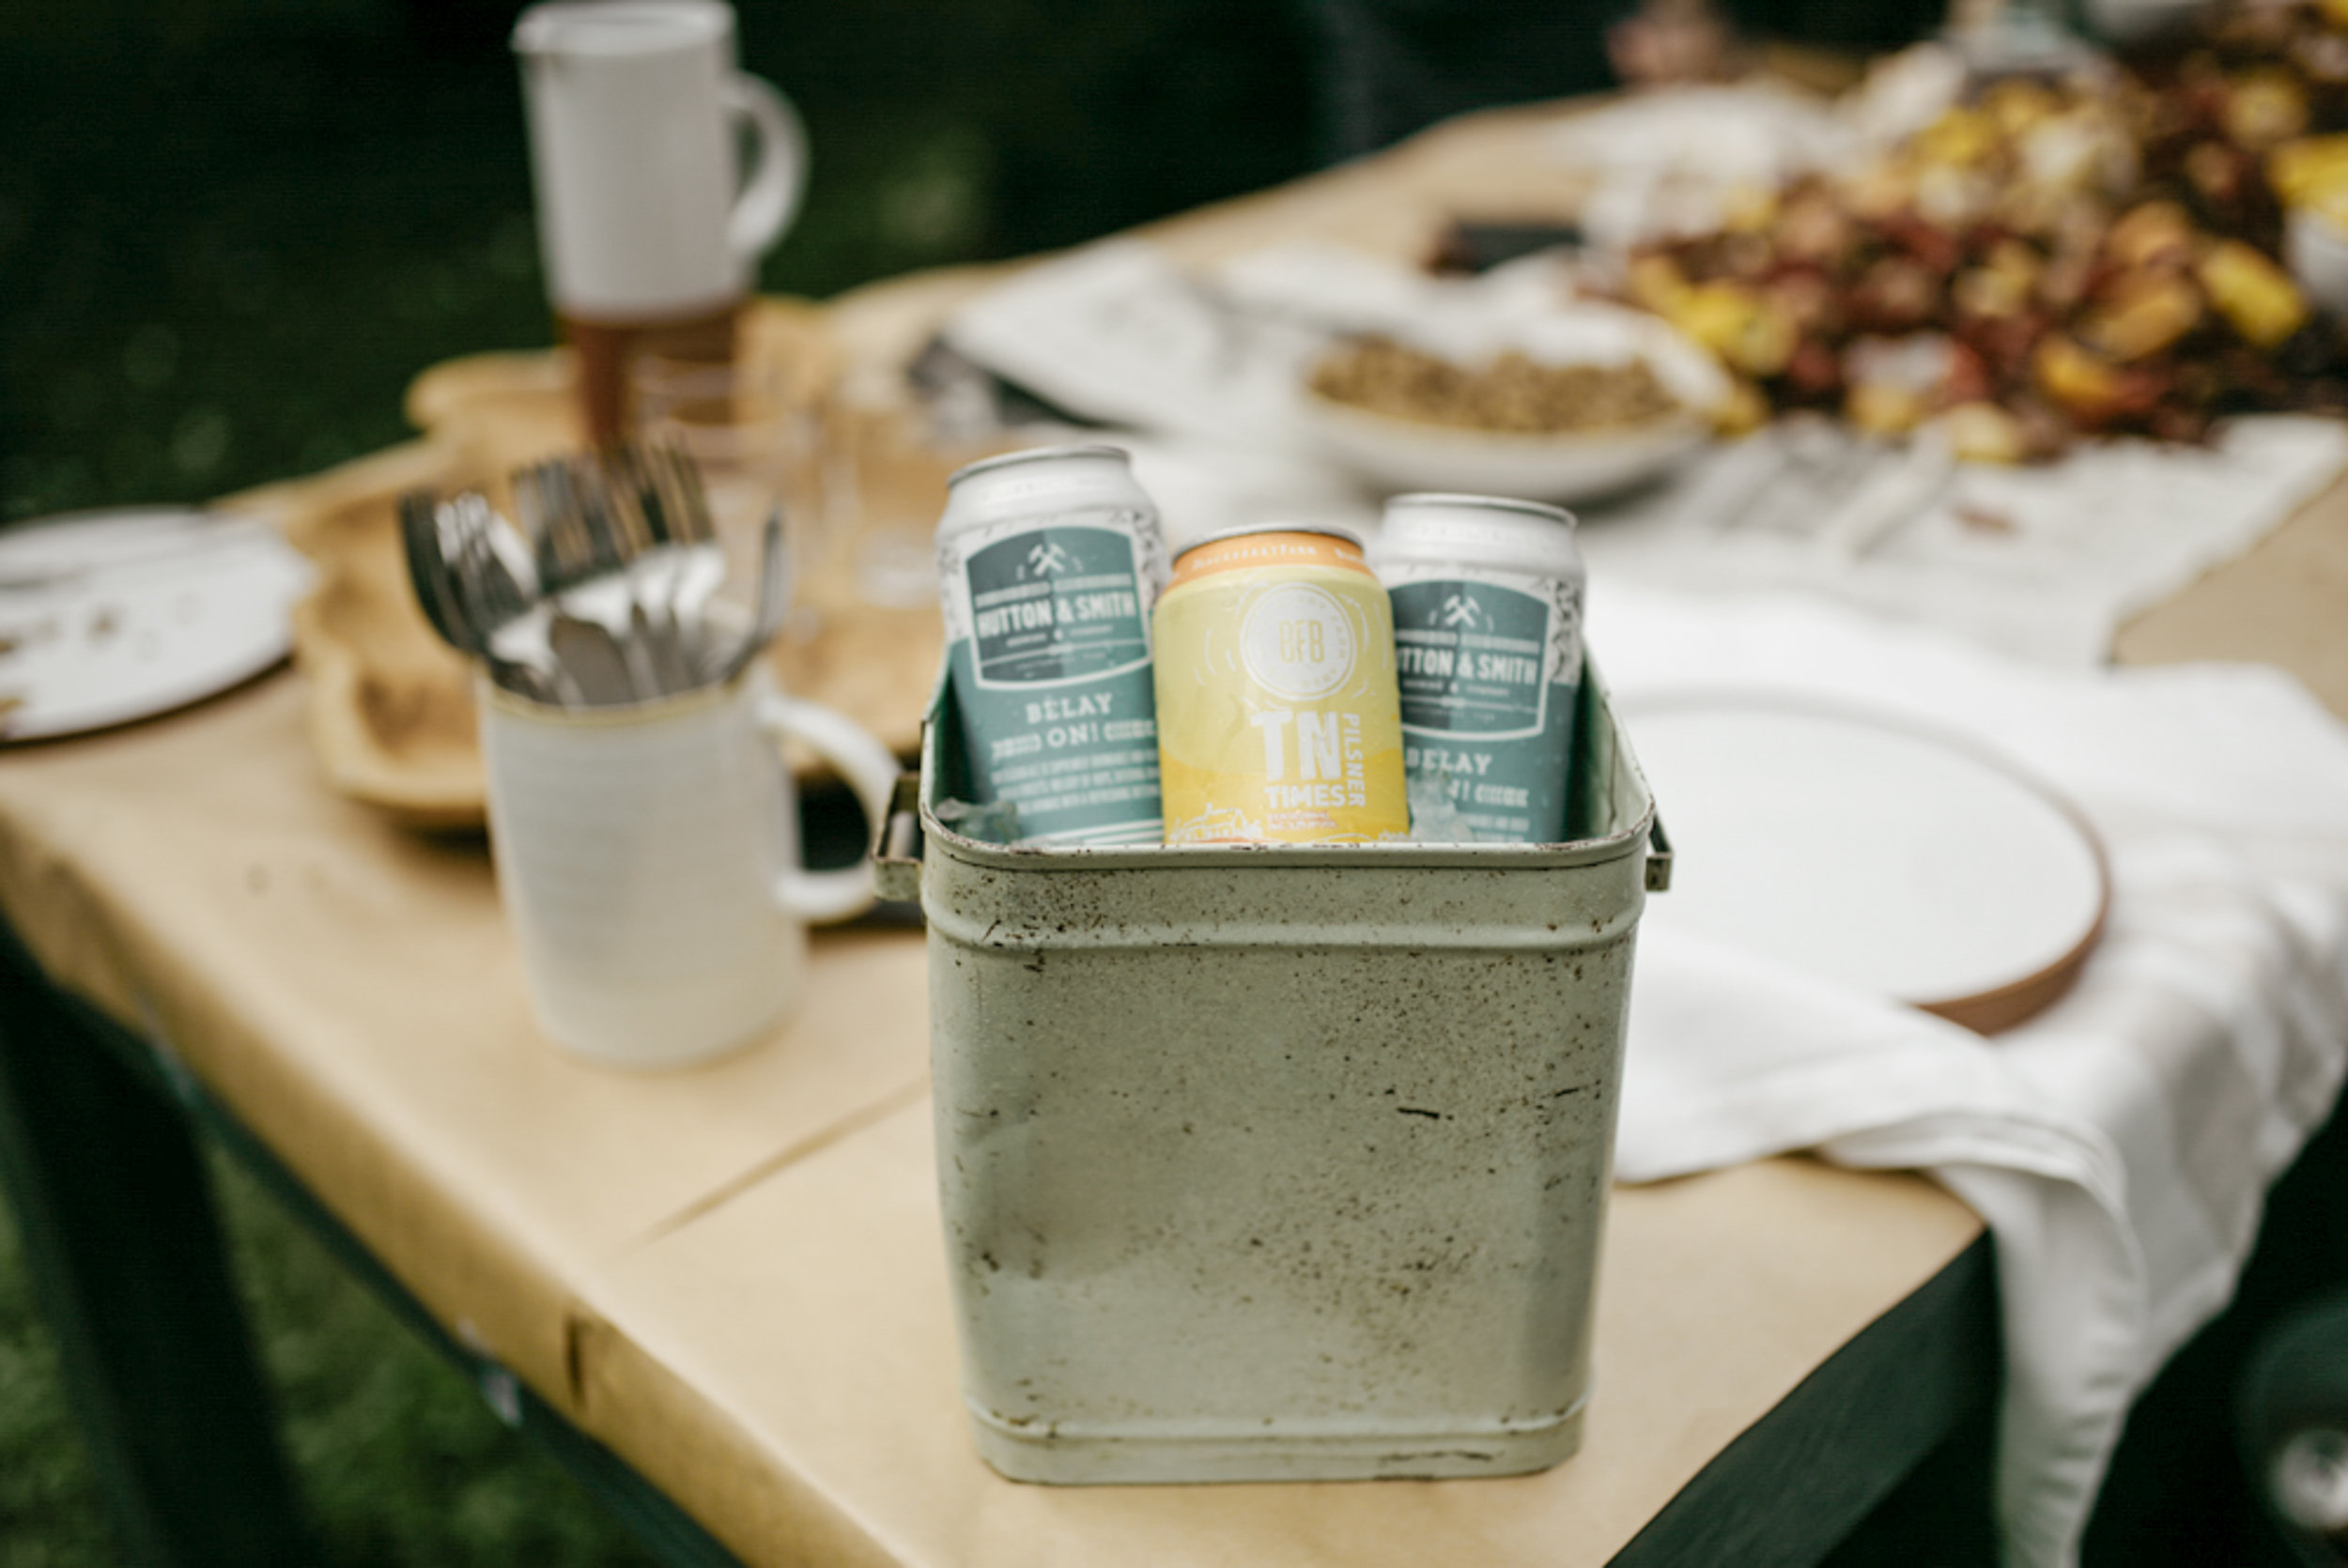 210-mayker-creative-crawfish-boil-summer-party-ideas-rentals-nashville-design-tips-hosting-entertaining-Fox-Country-Farmhouse-Fourth-of-July.jpg